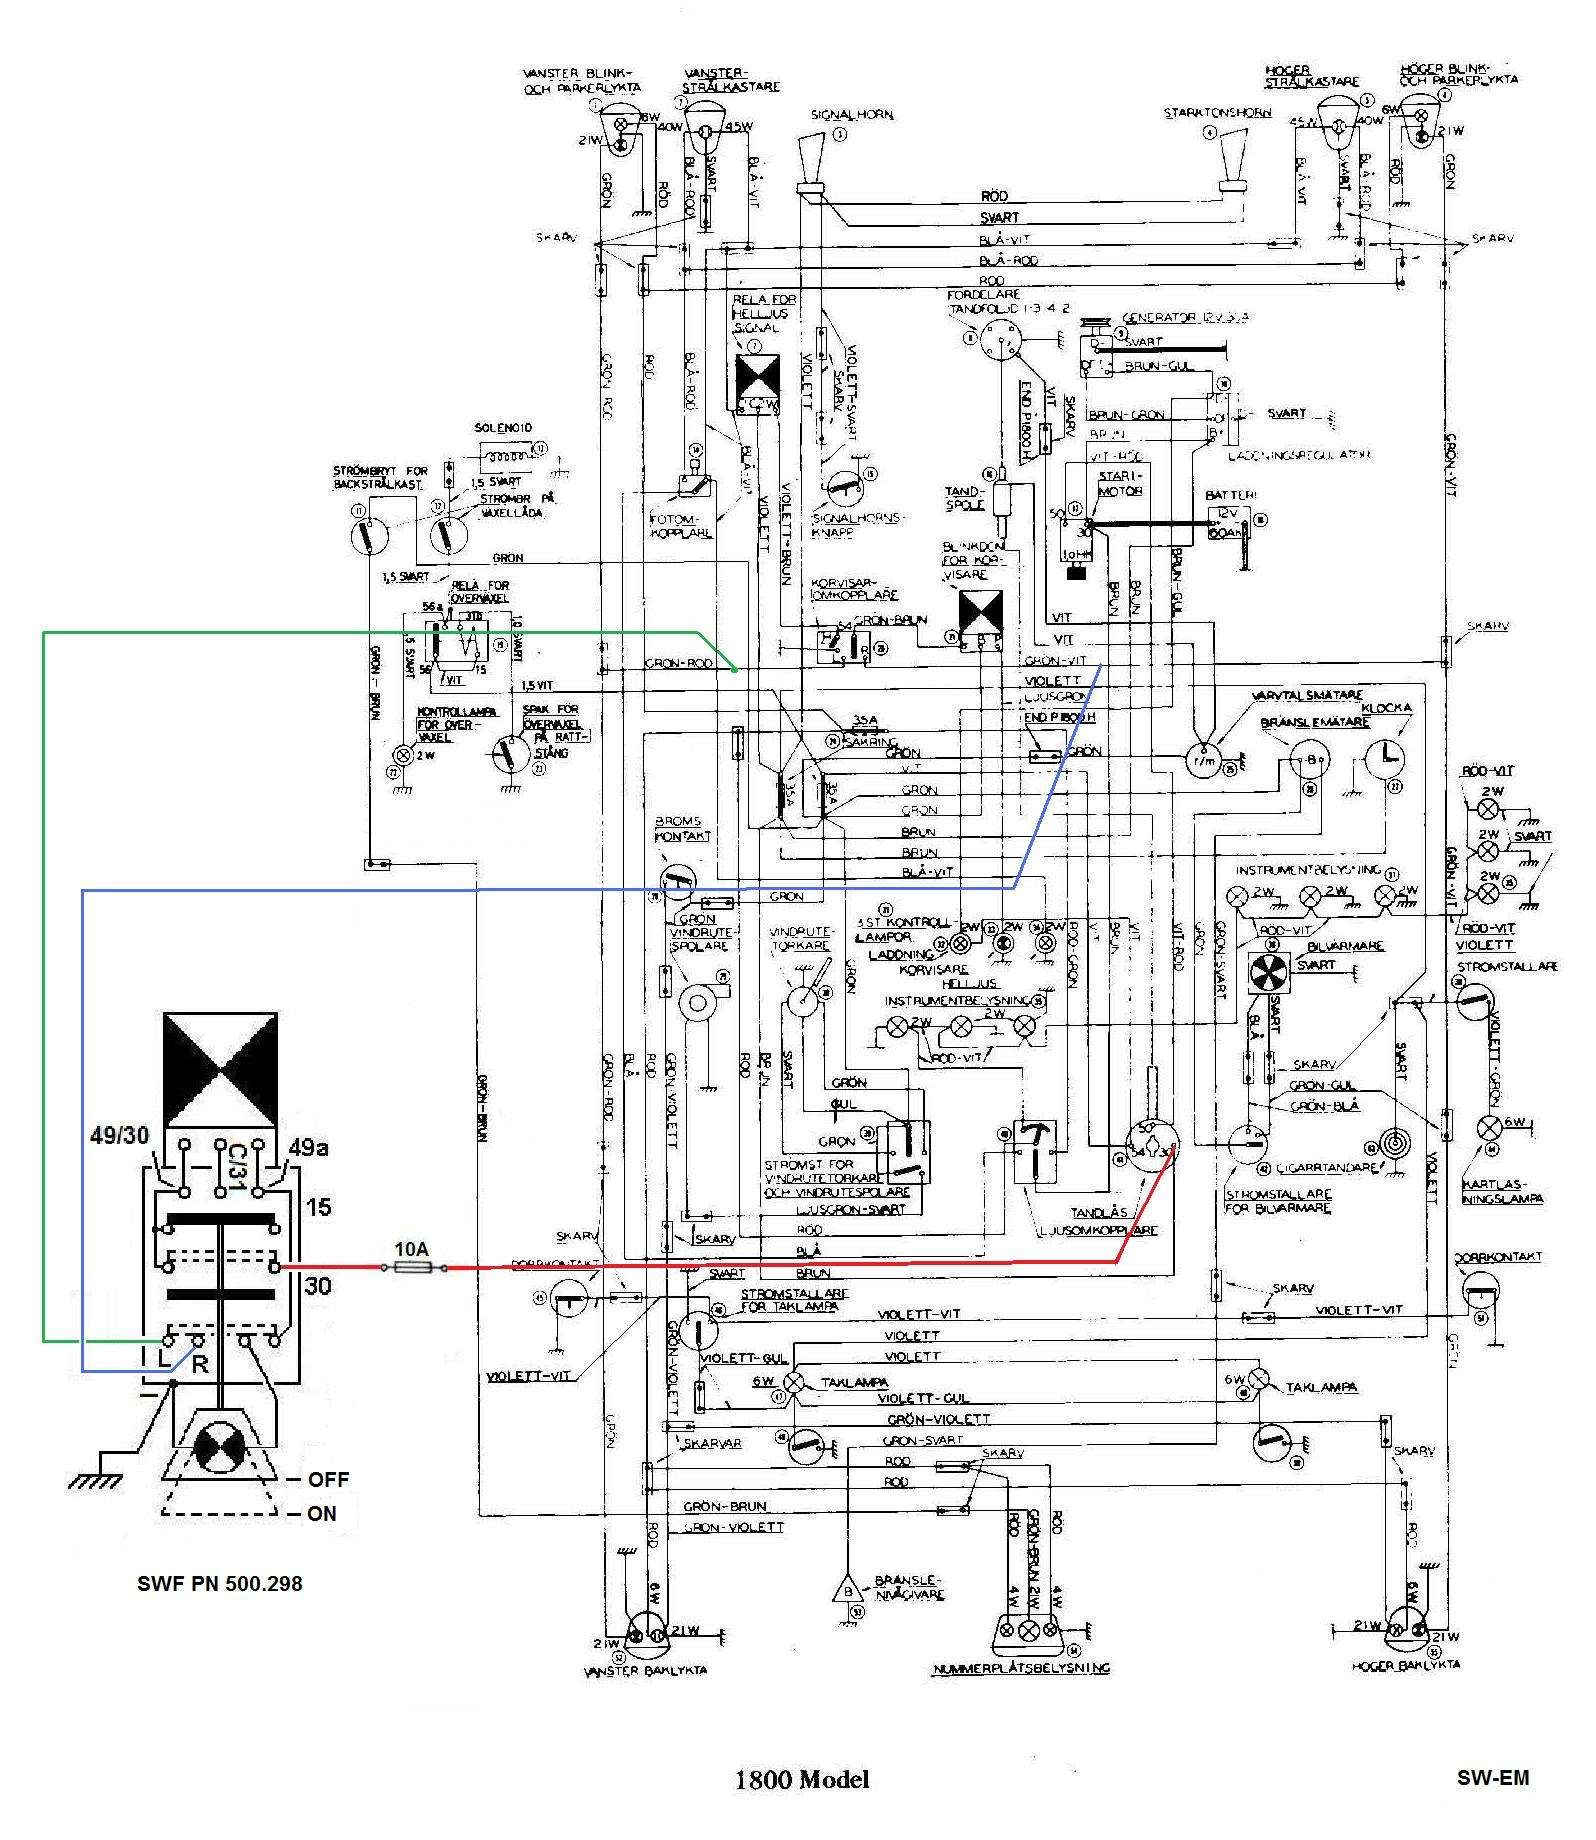 Baseboard Heater Wiring Diagram As Well 4 Prong Dryer Outlet Wiring